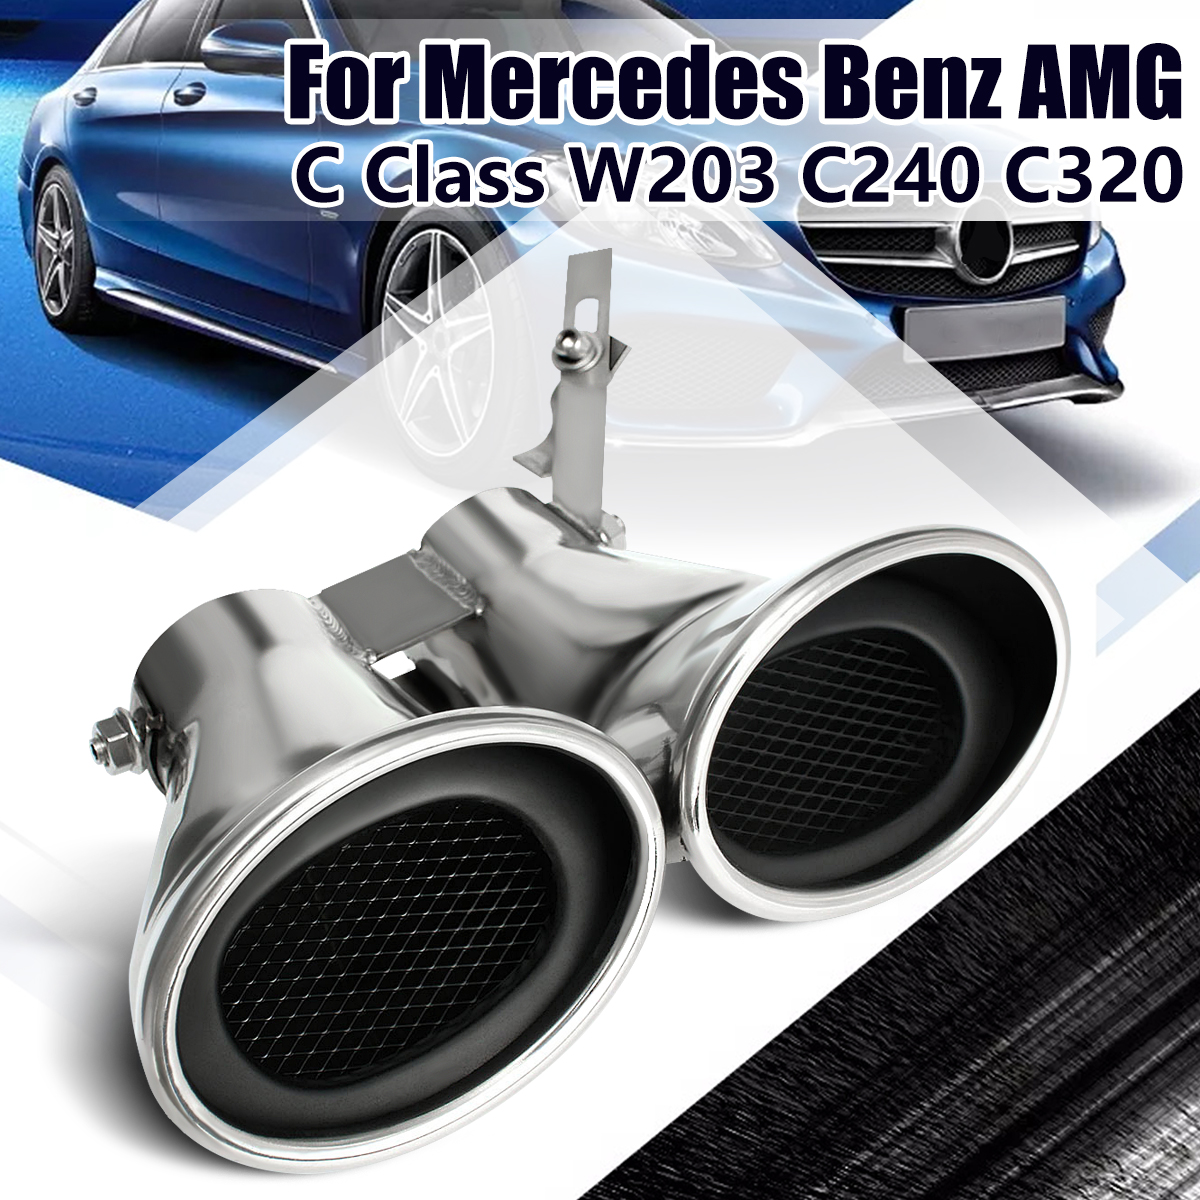 Car Auto Rear Tail Throat Liner Stainless Steel Dual Exhaust Muffler Pipe For MERCEDES-BENZ -AMG C Class W203 C240 C320